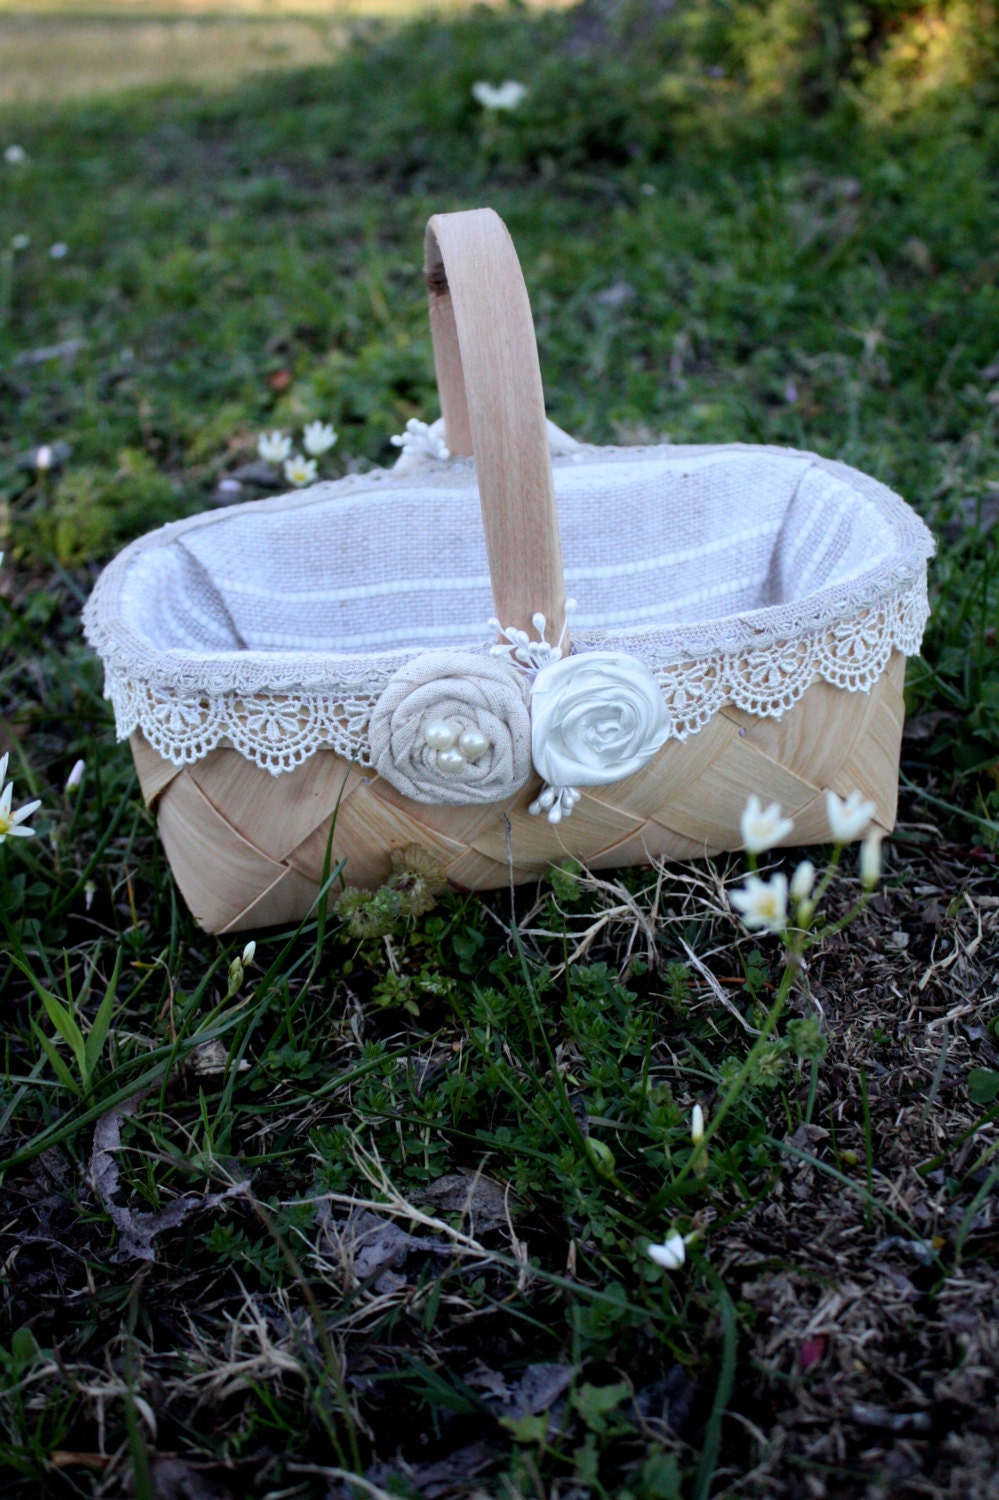 Flower Baskets For Wedding : Flower girl baskets wedding burlap